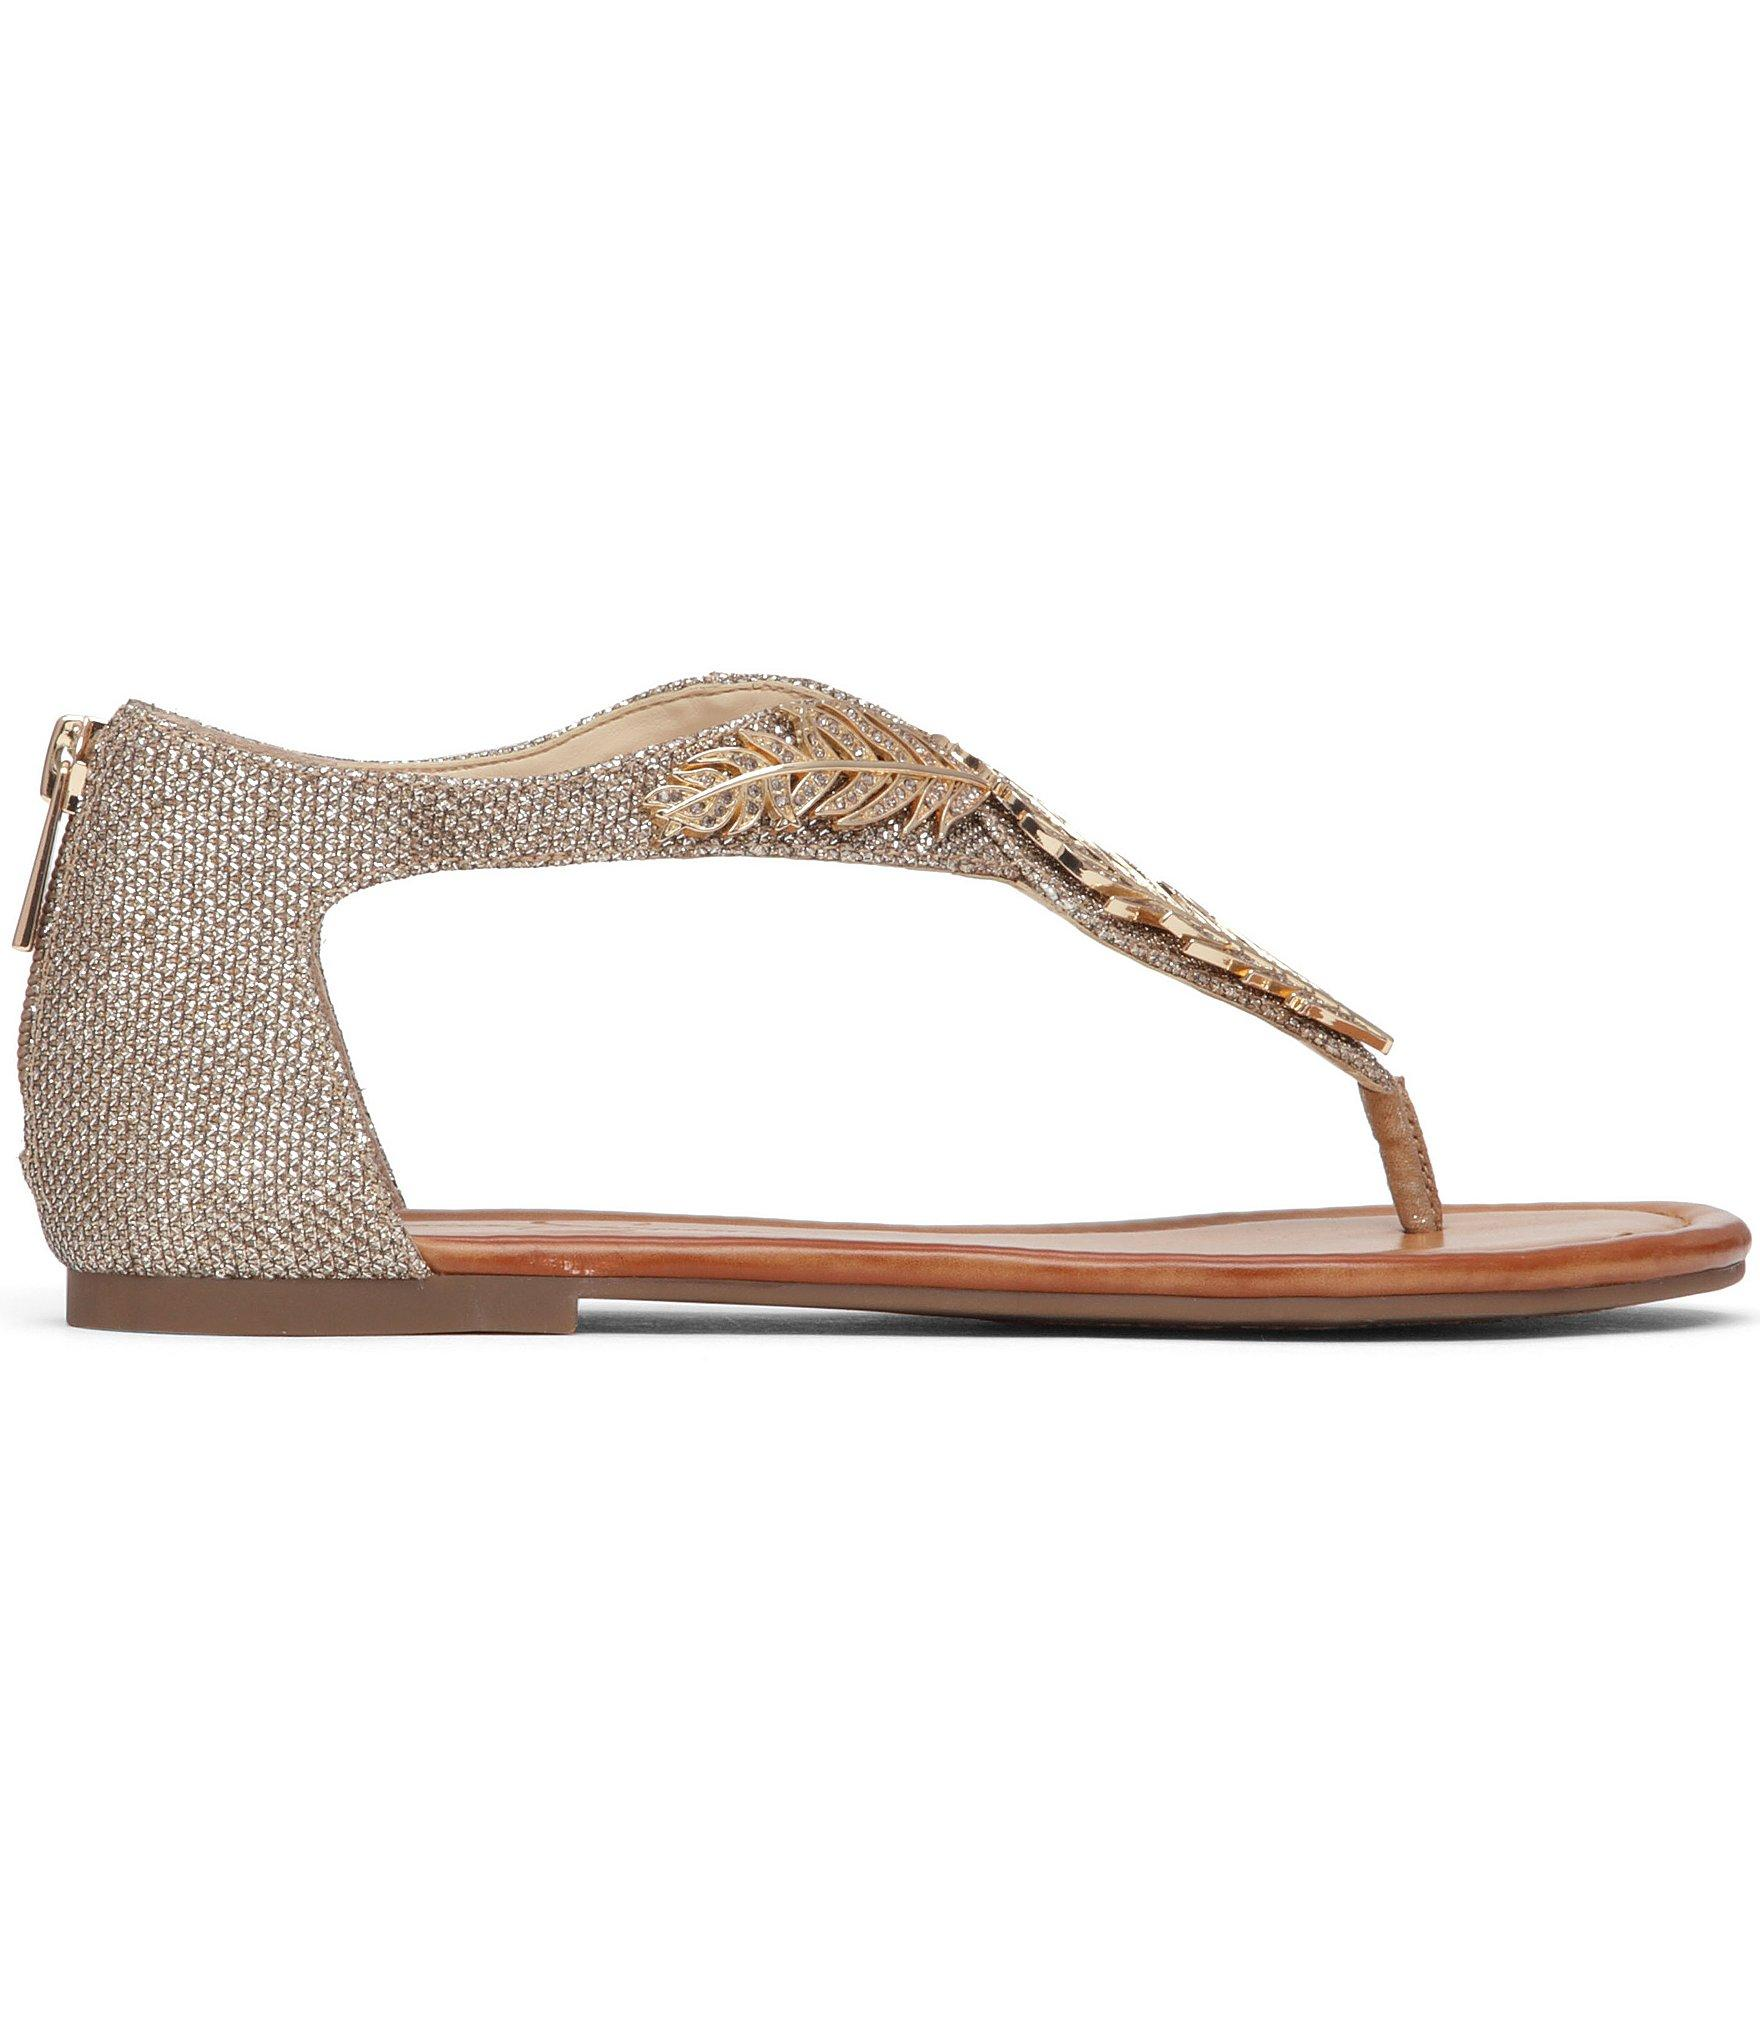 34c4b9993305 Lyst - Jessica Simpson Kalie Embellished Flat Thong Sandals in Metallic